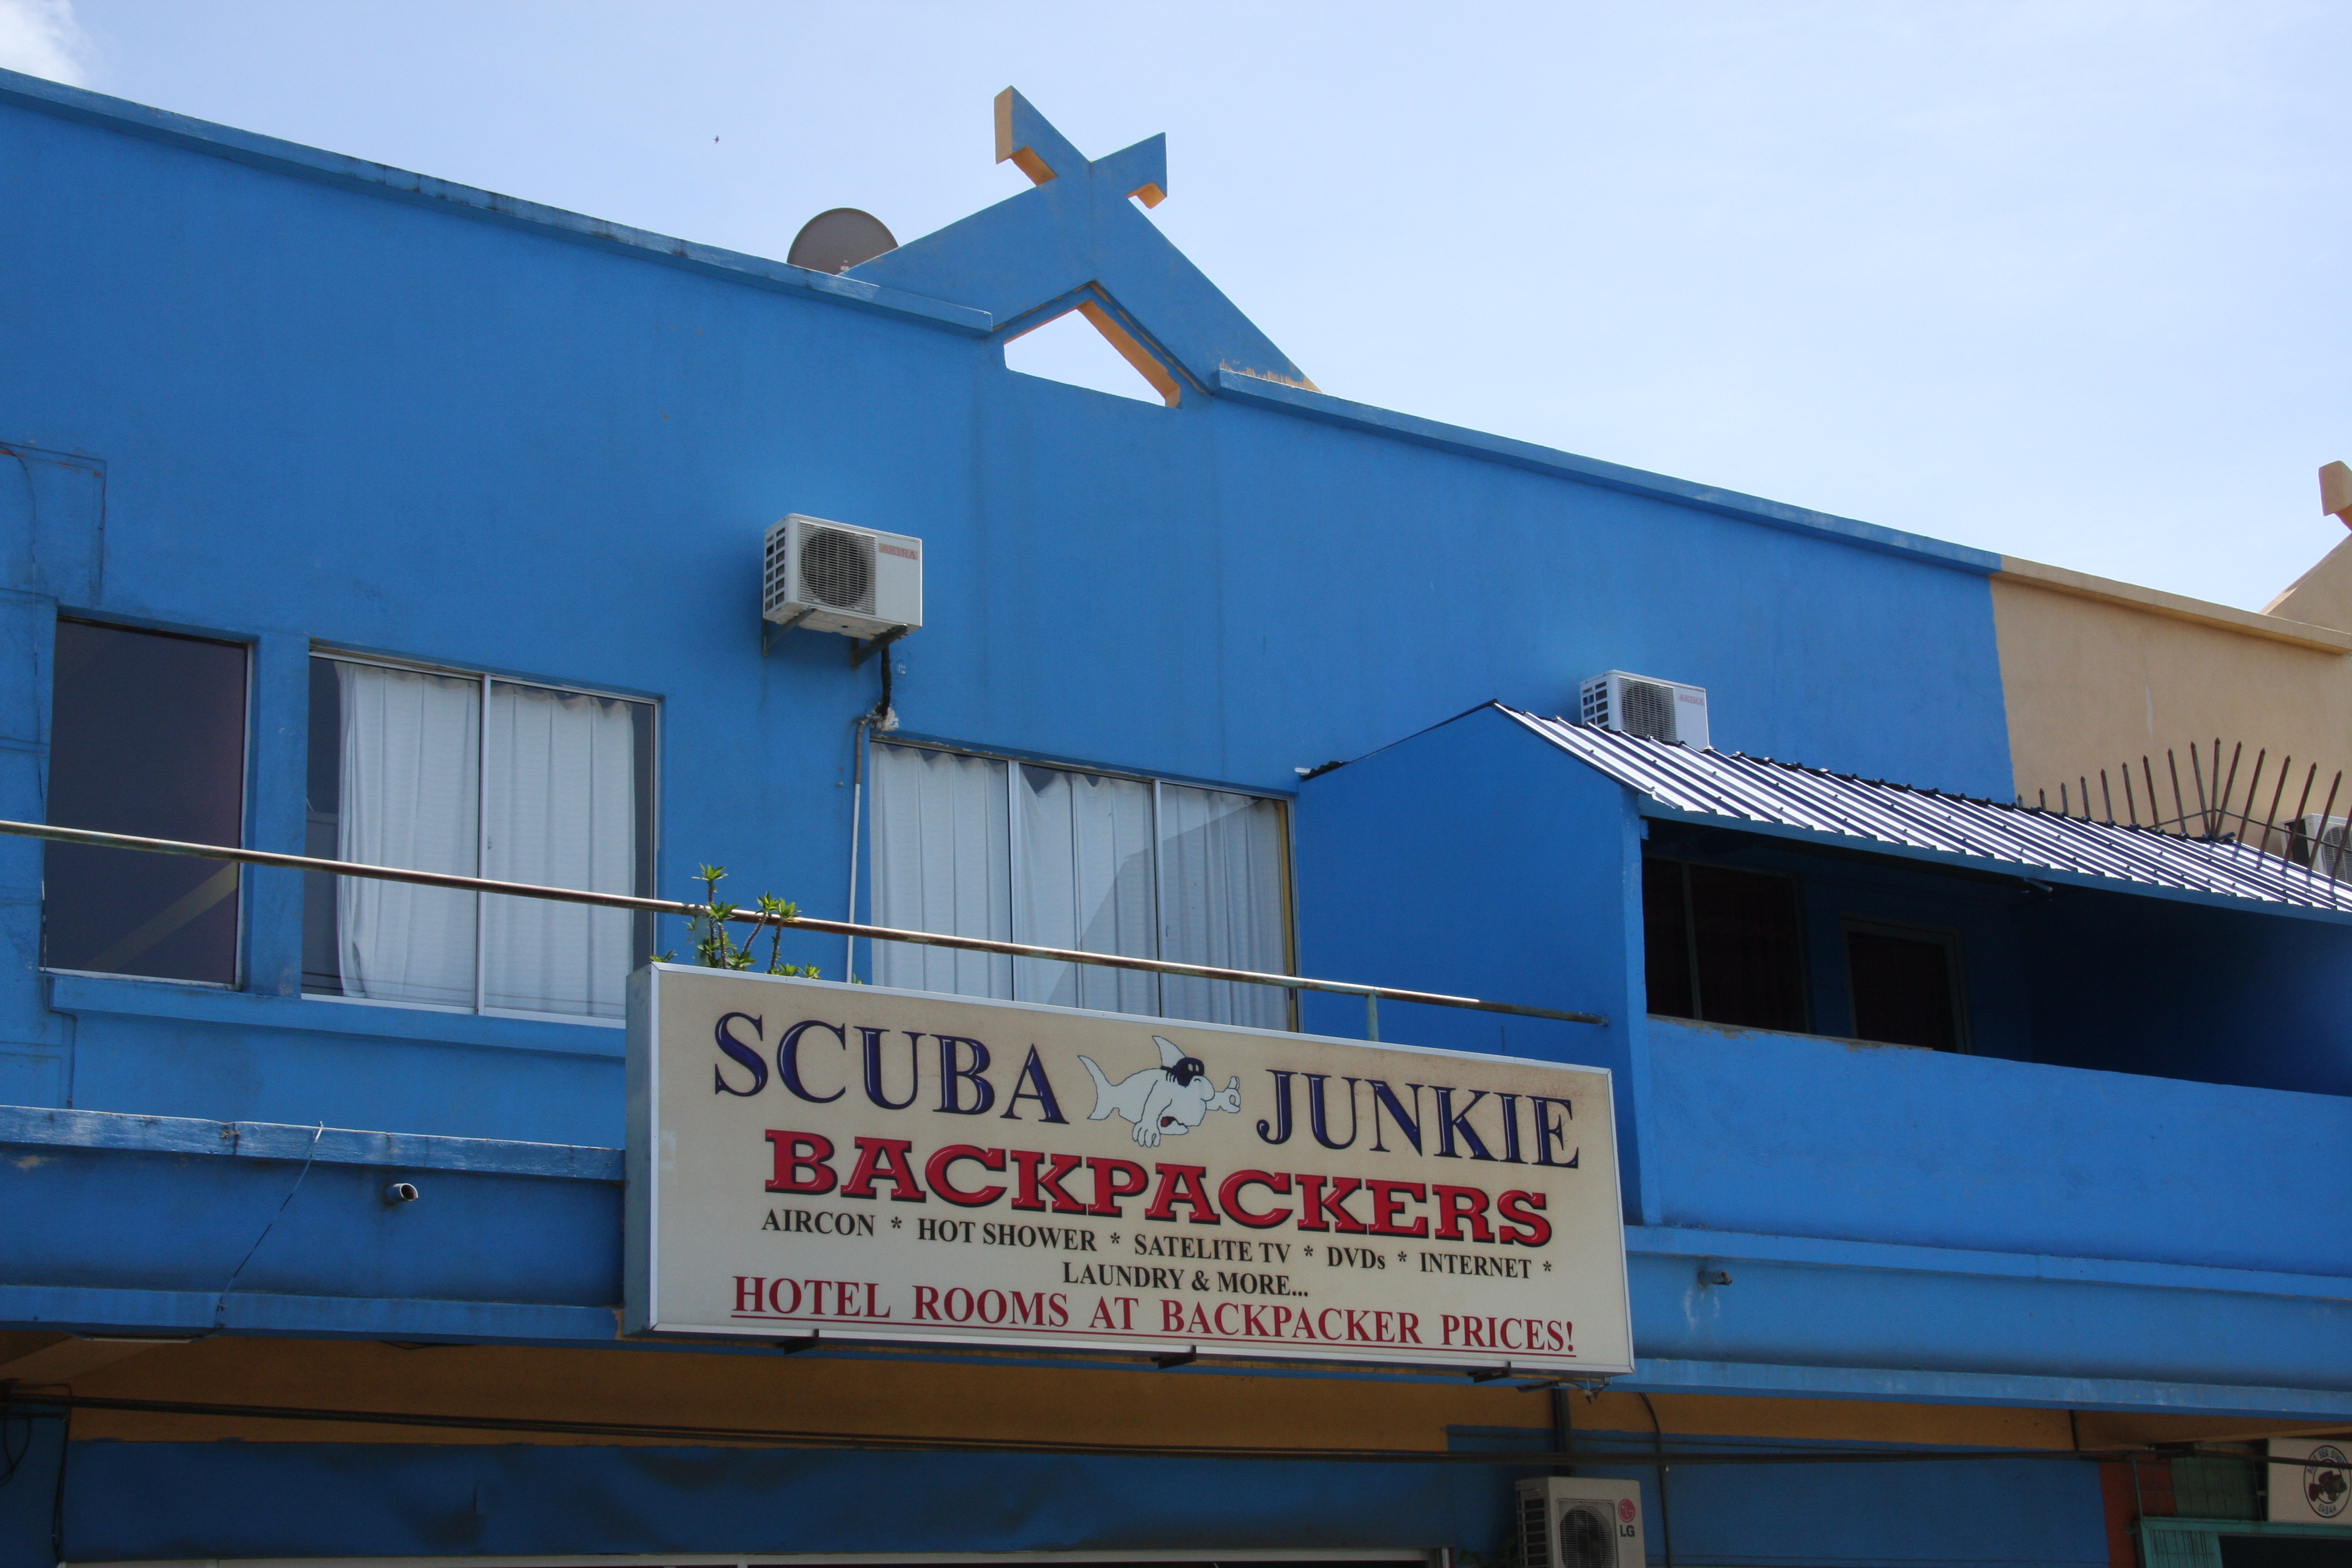 Scuba Junkie Backpackers